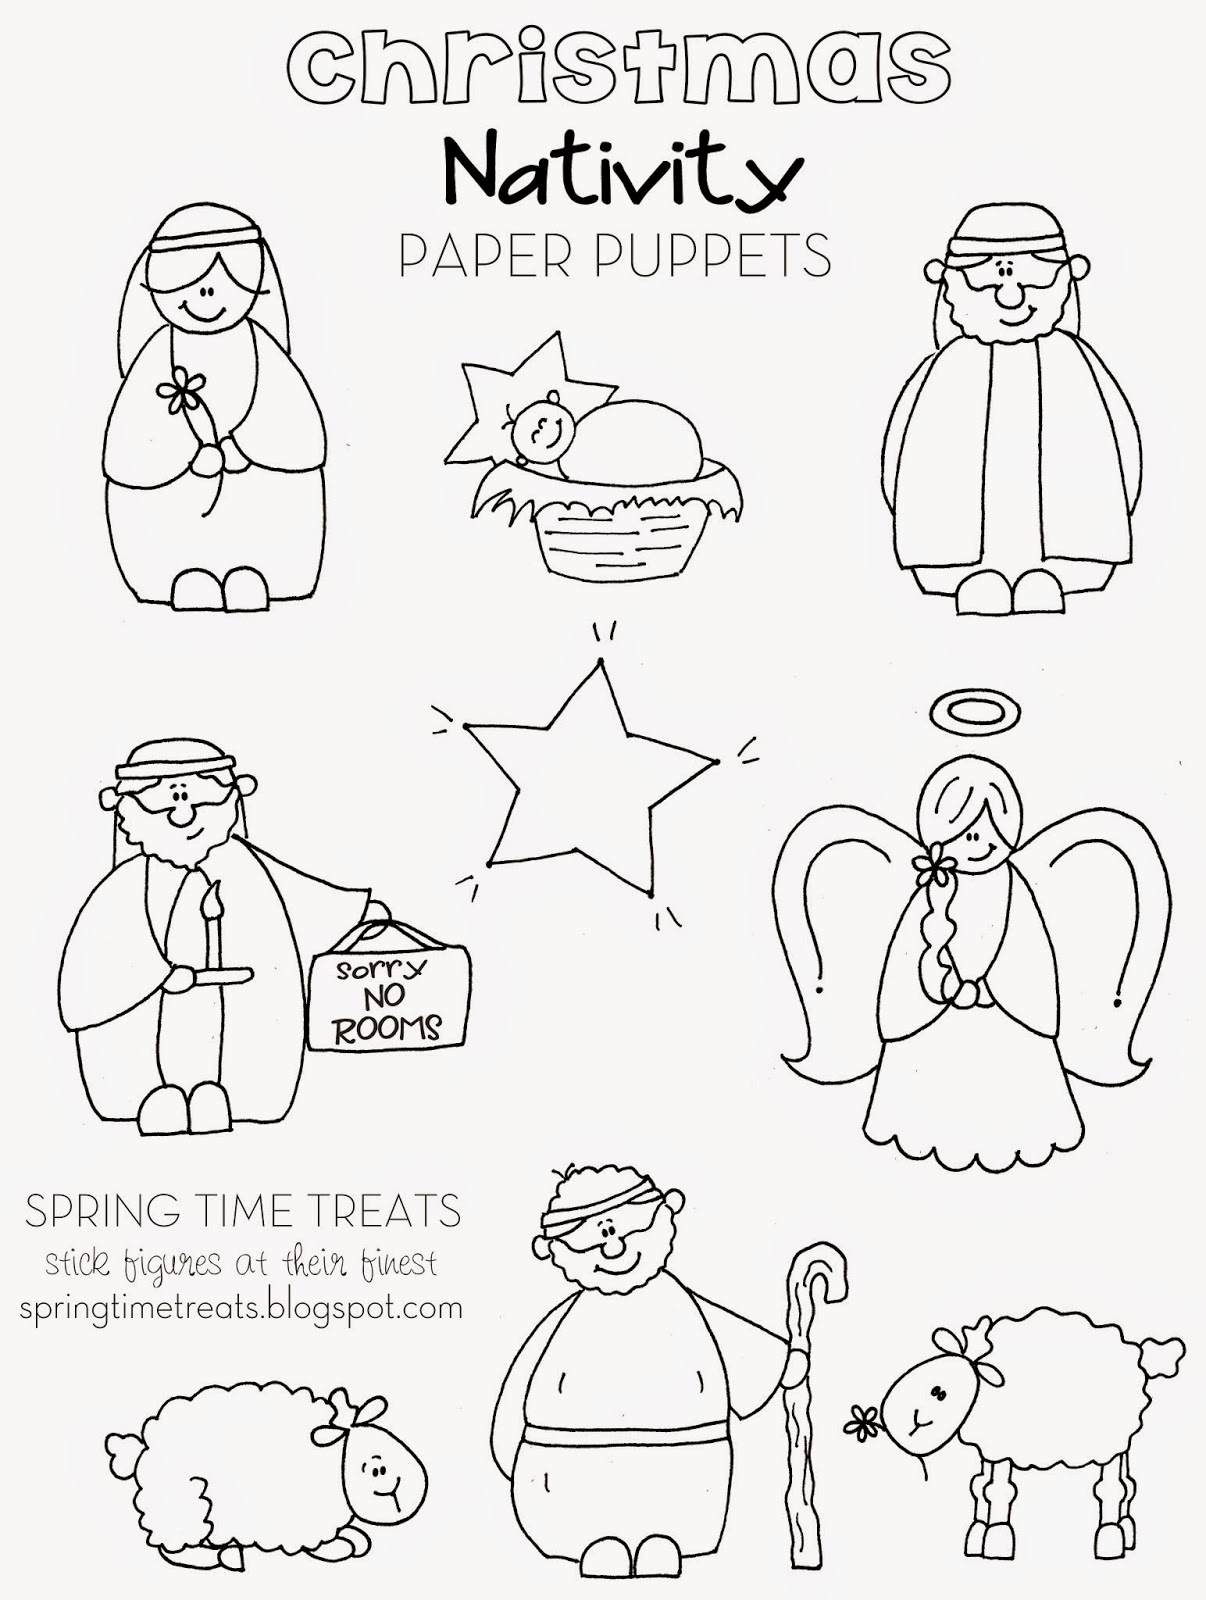 photograph relating to Printable Puppets on a Stick called Nativity paper puppets - Free of charge printables